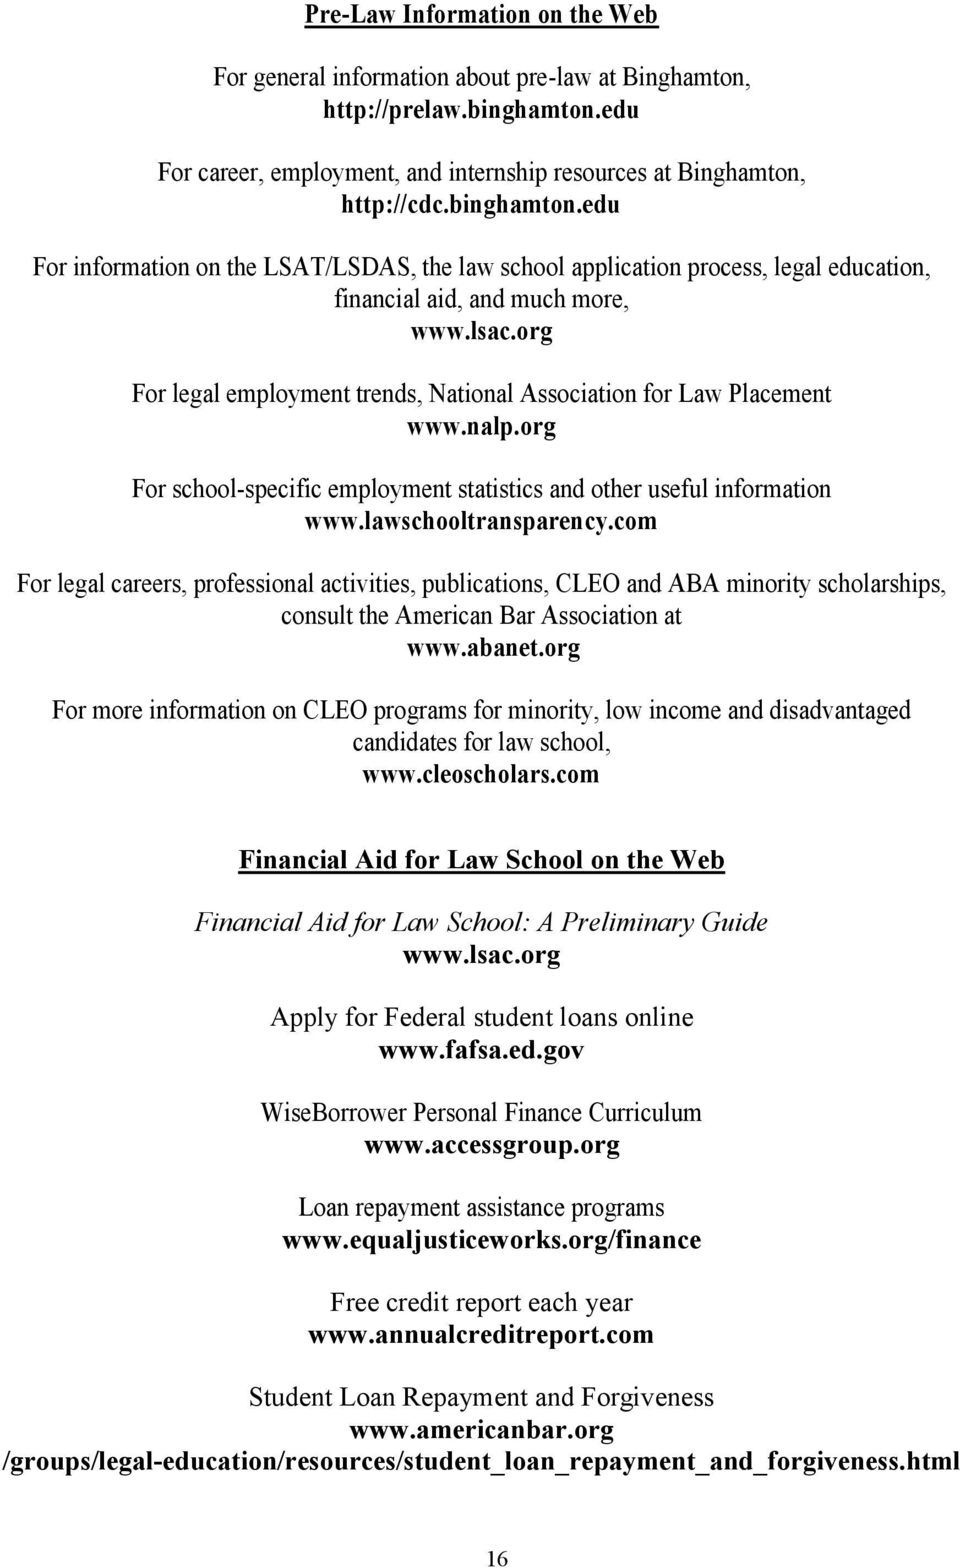 edu For information on the LSAT/LSDAS, the law school application process, legal education, financial aid, and much more, www.lsac.